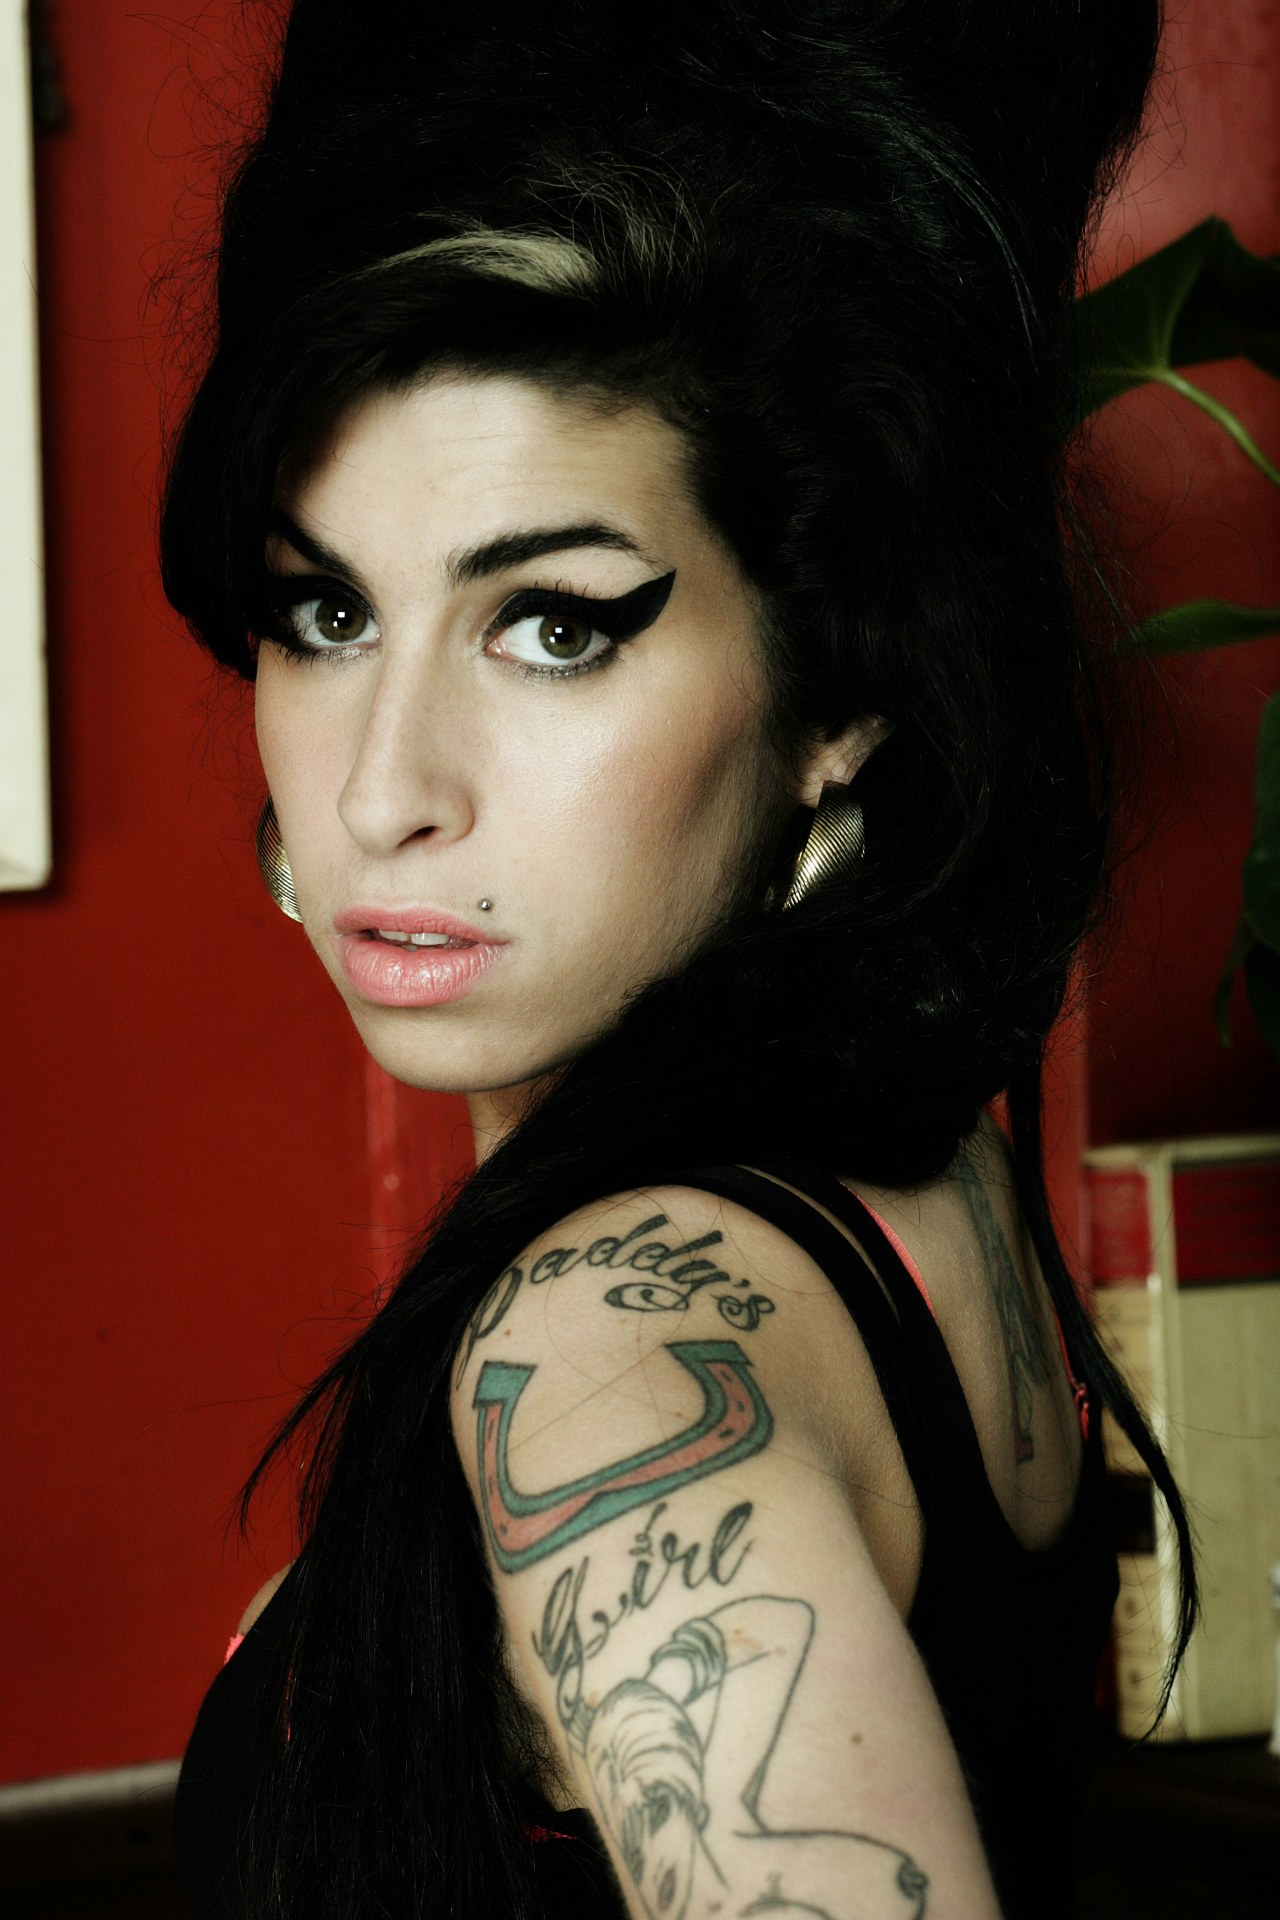 Amy - The Girl Behind the Name - Bild 1